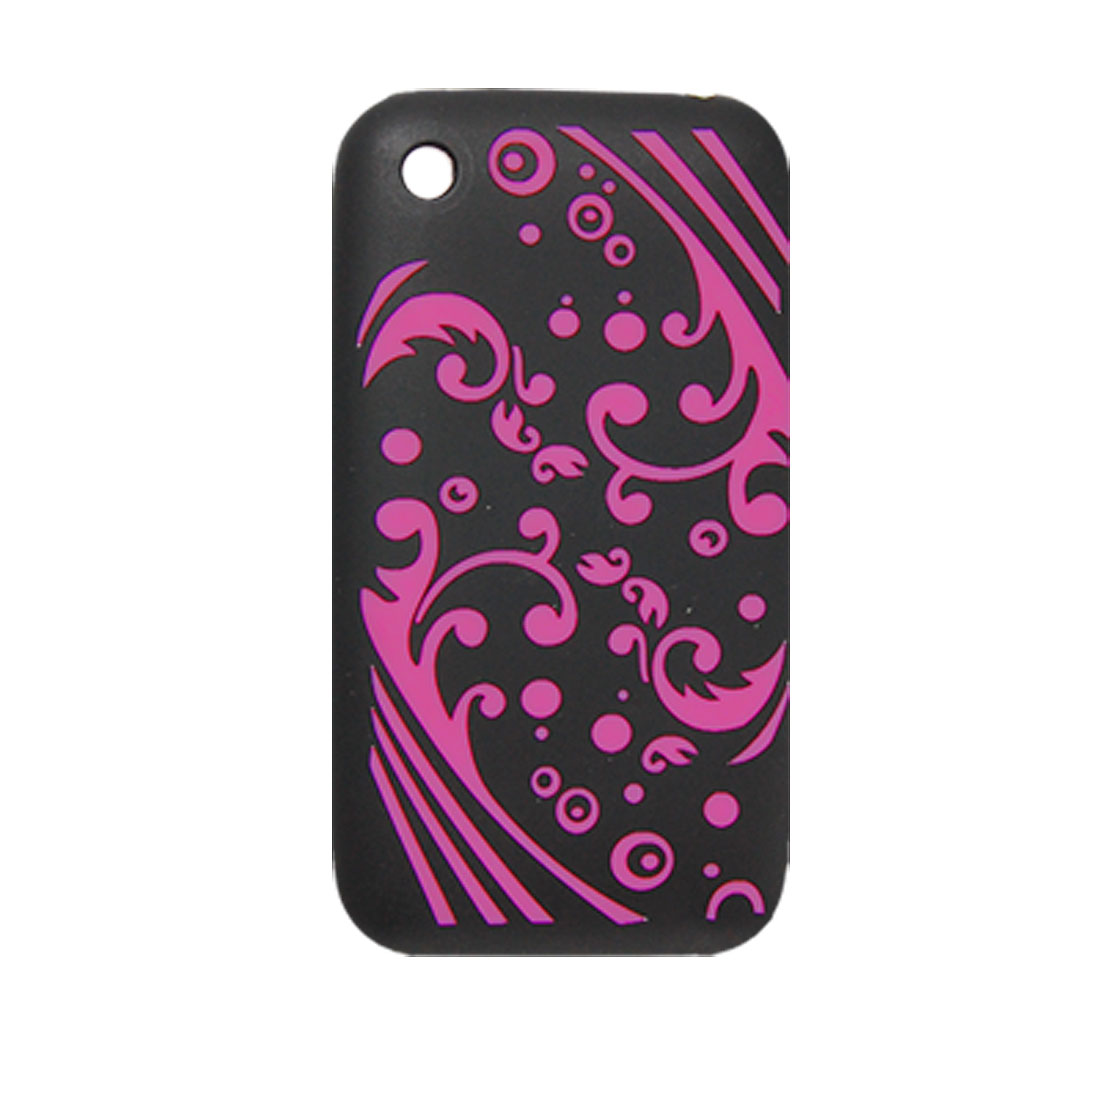 Black Fuchsia Sea Wave Soft Silicone Case for iPhone 3G